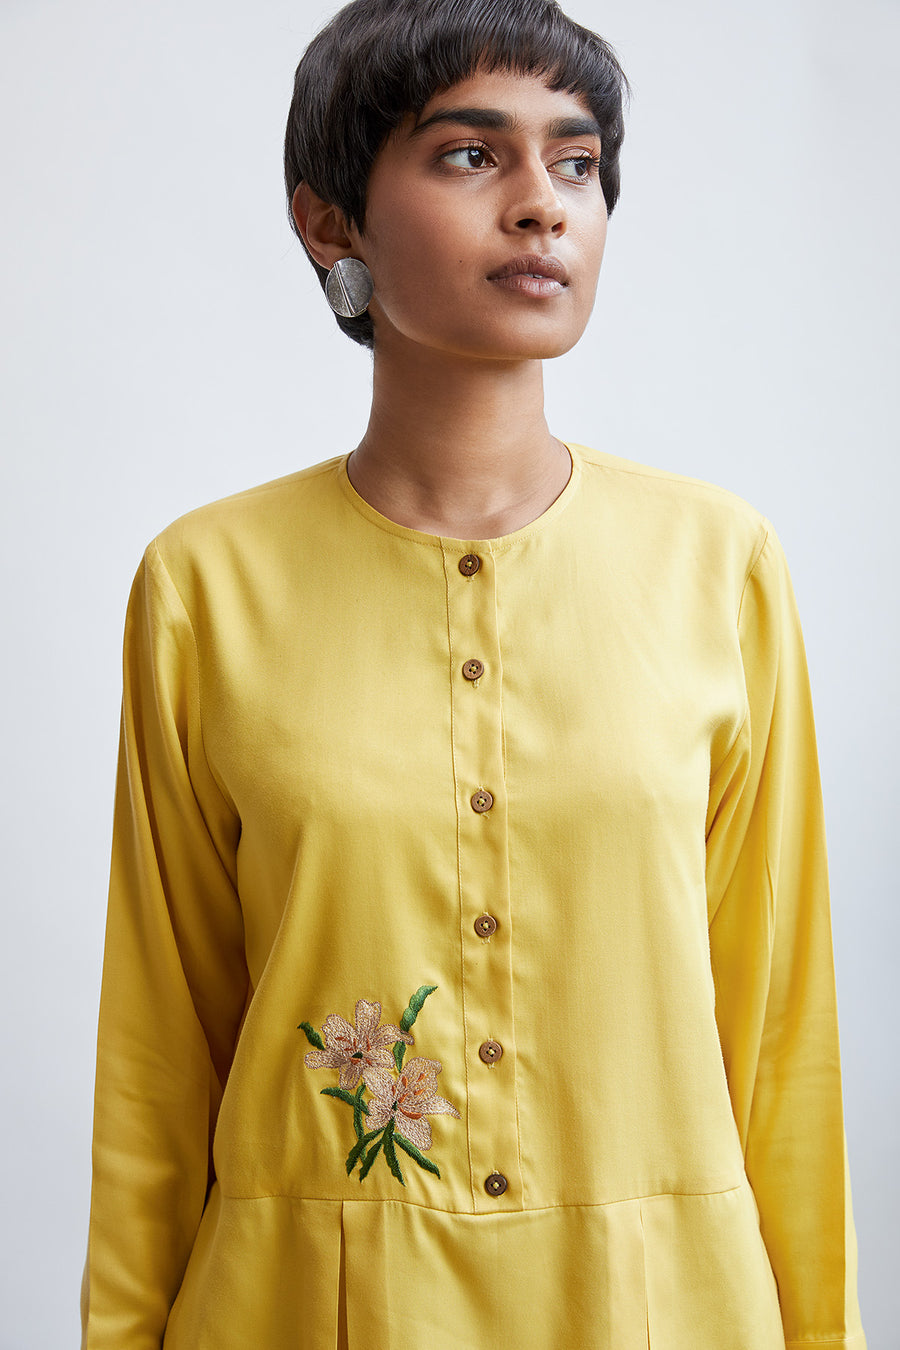 Sunny orchird tencel top - Ethical made fashion - onlyethikal